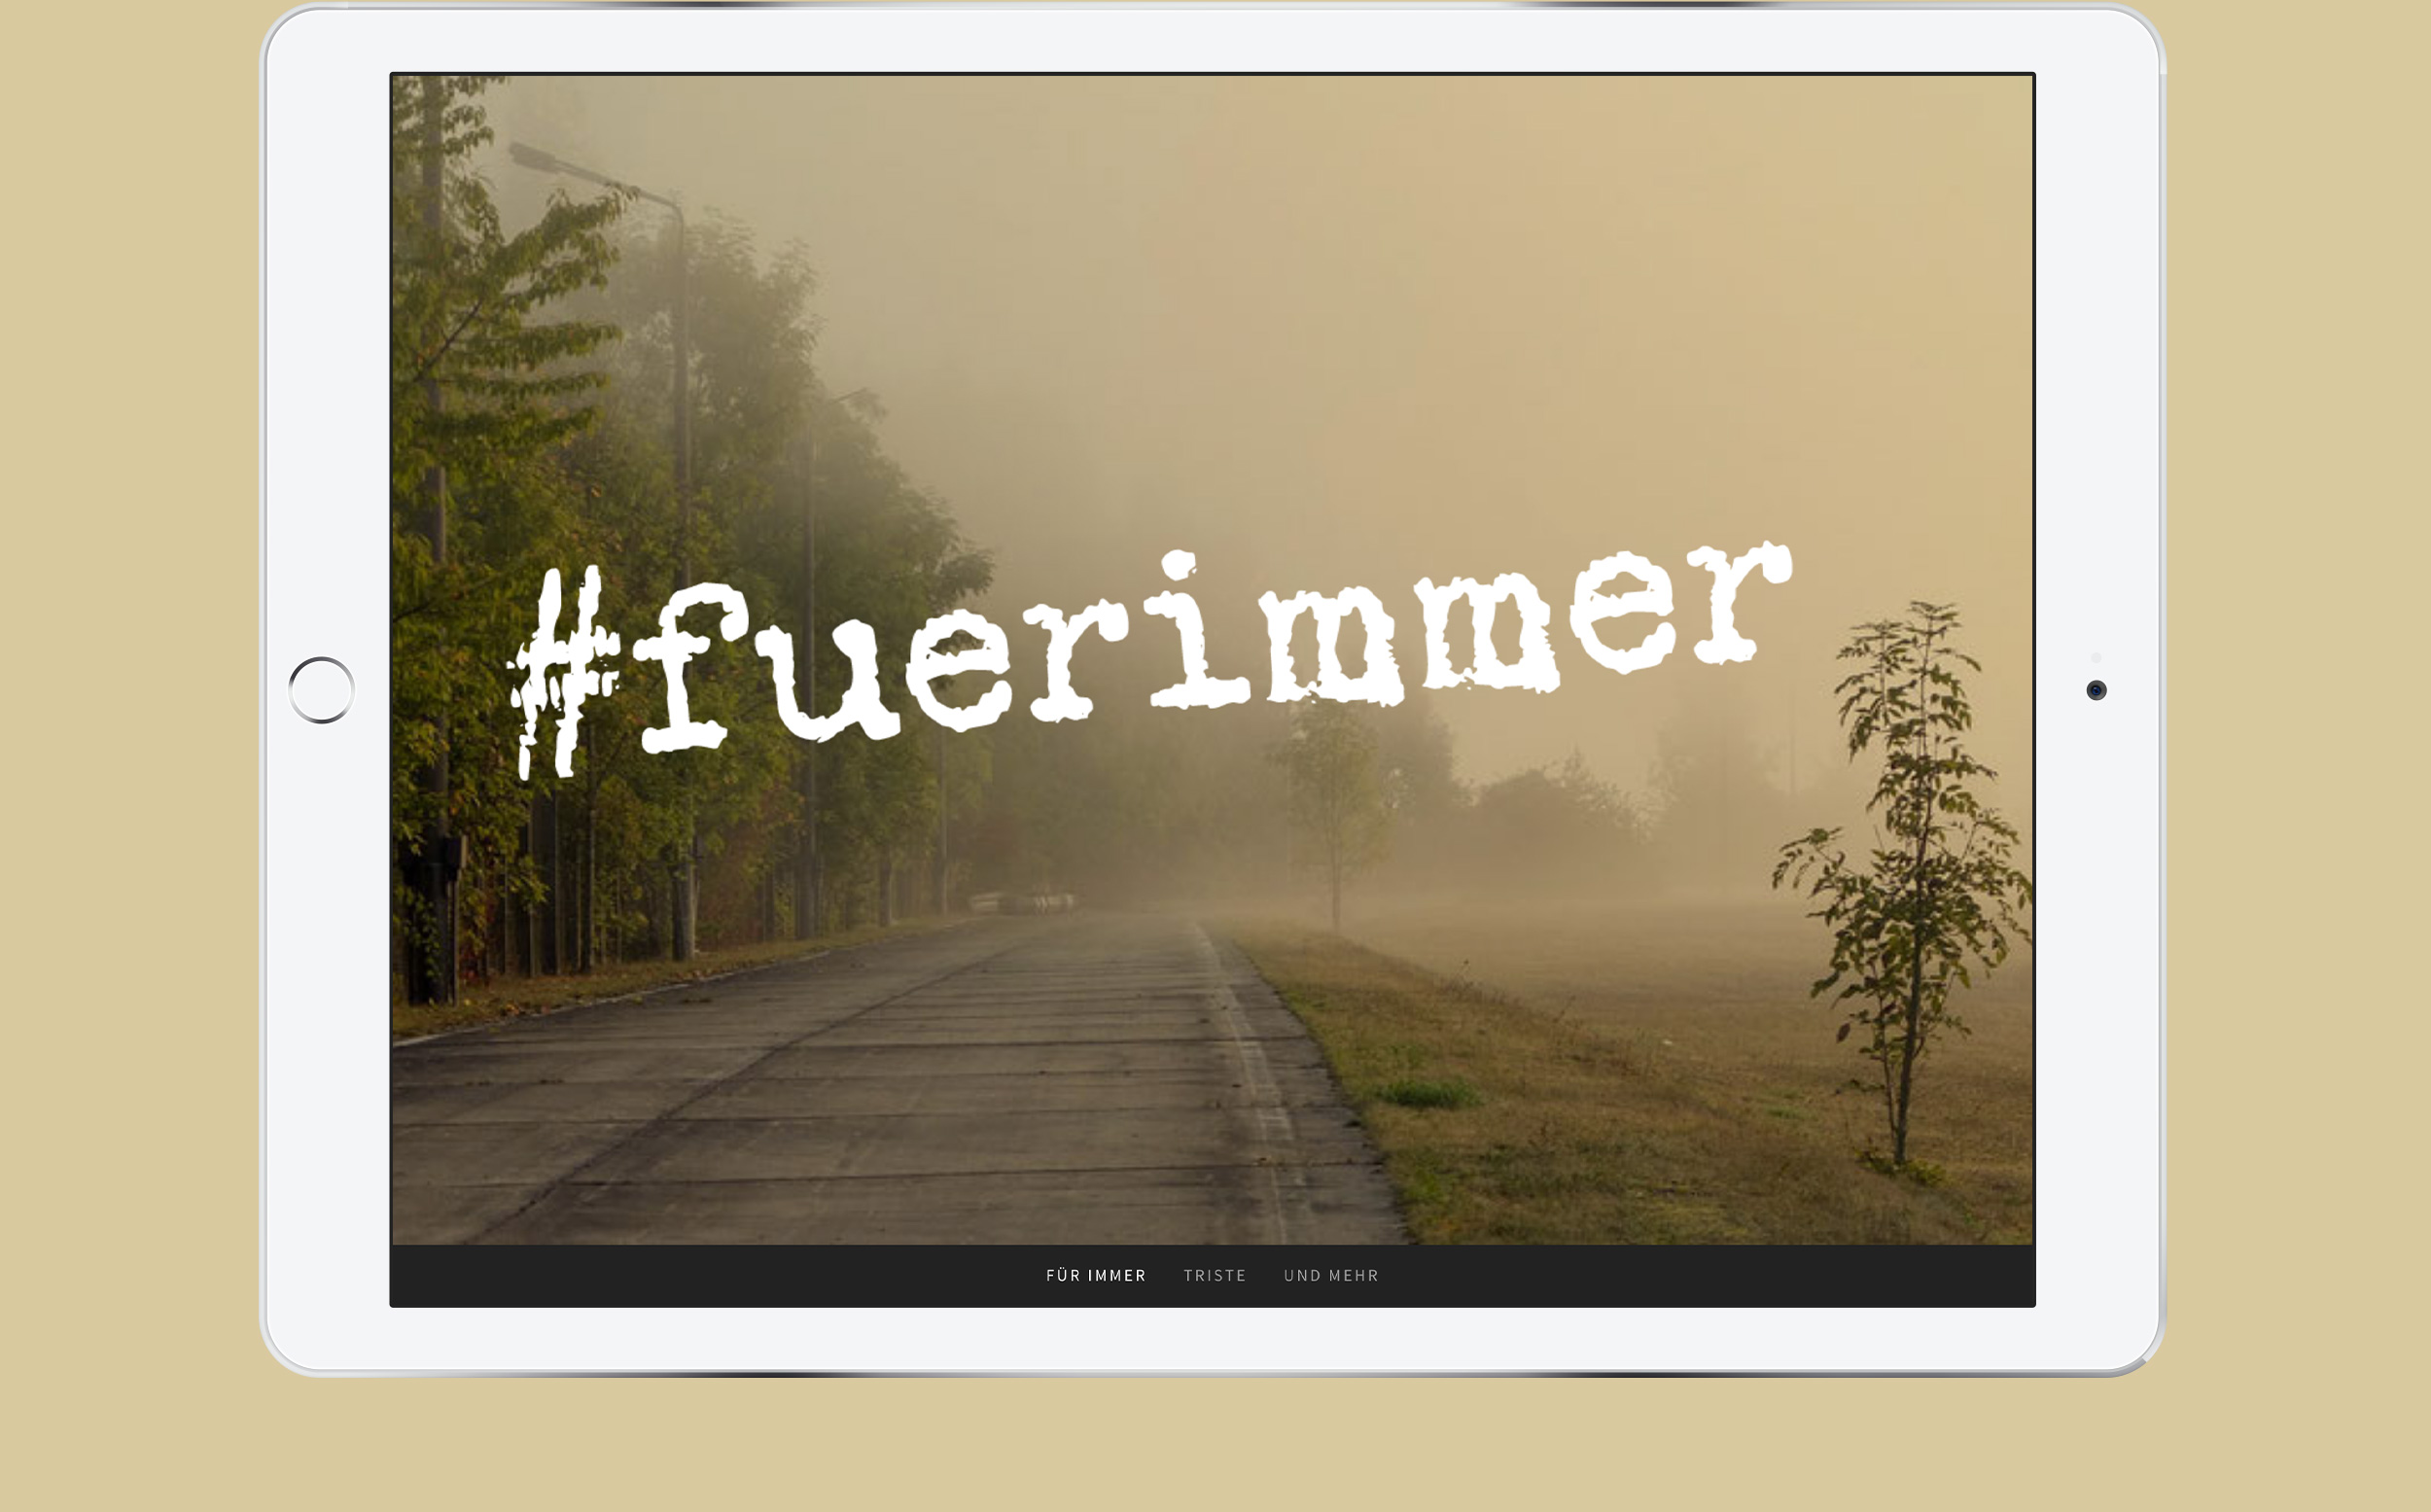 grusnickfilm-fuerimmer-website-ipad-studio-ahoi_cropped.png